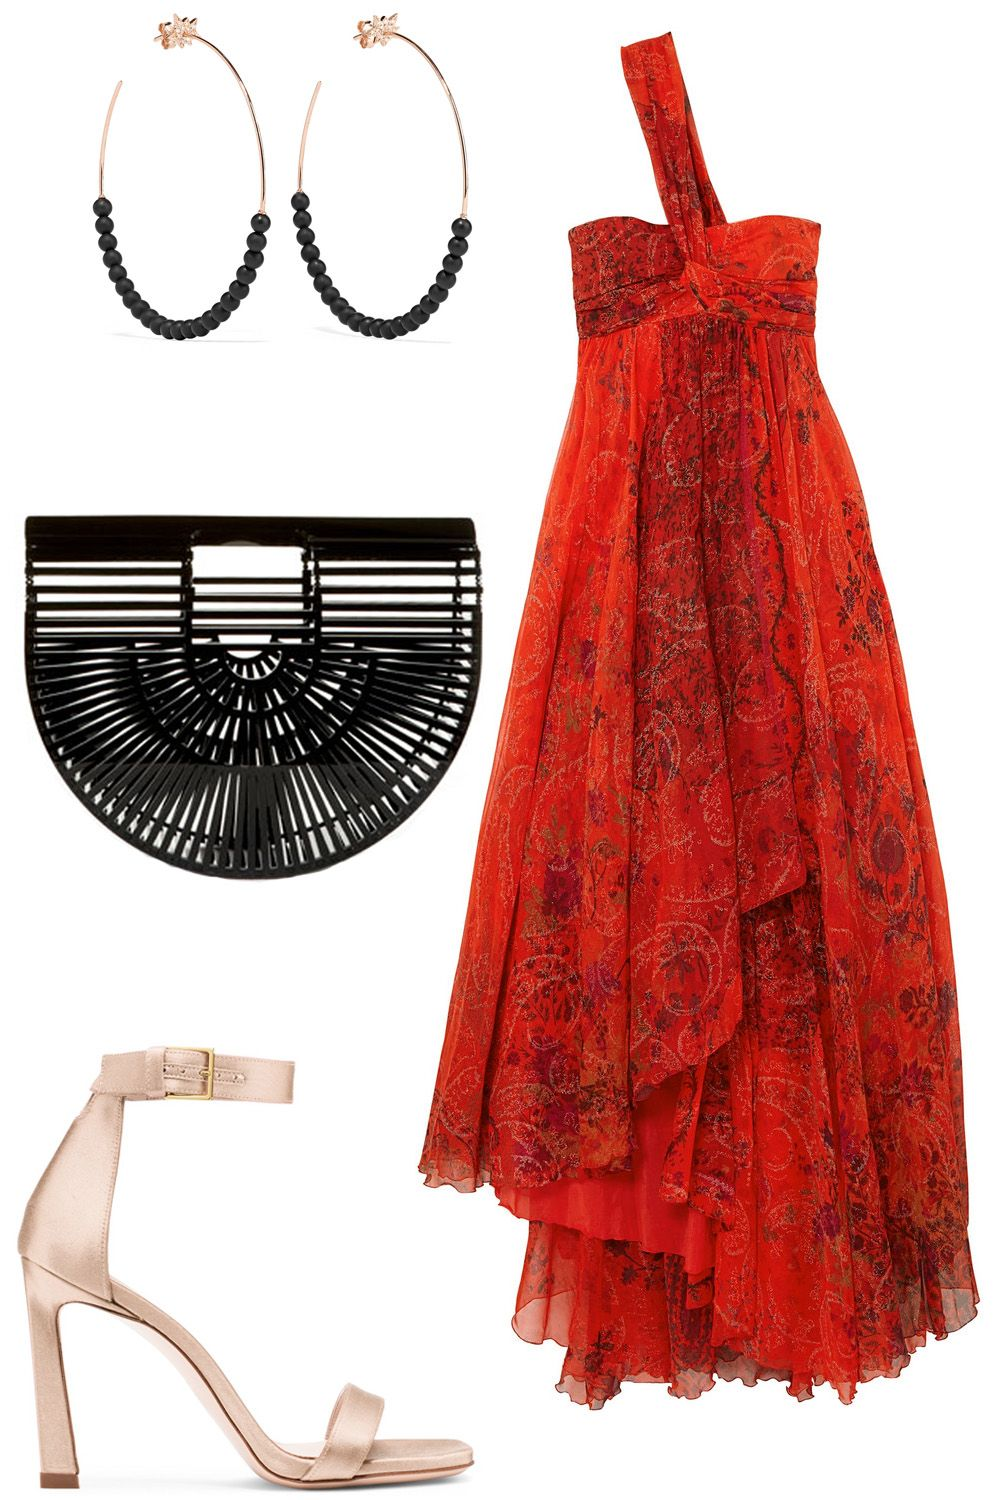 Dresses To Wear To A Summer Wedding As A Guest Wedding Guest Outfits